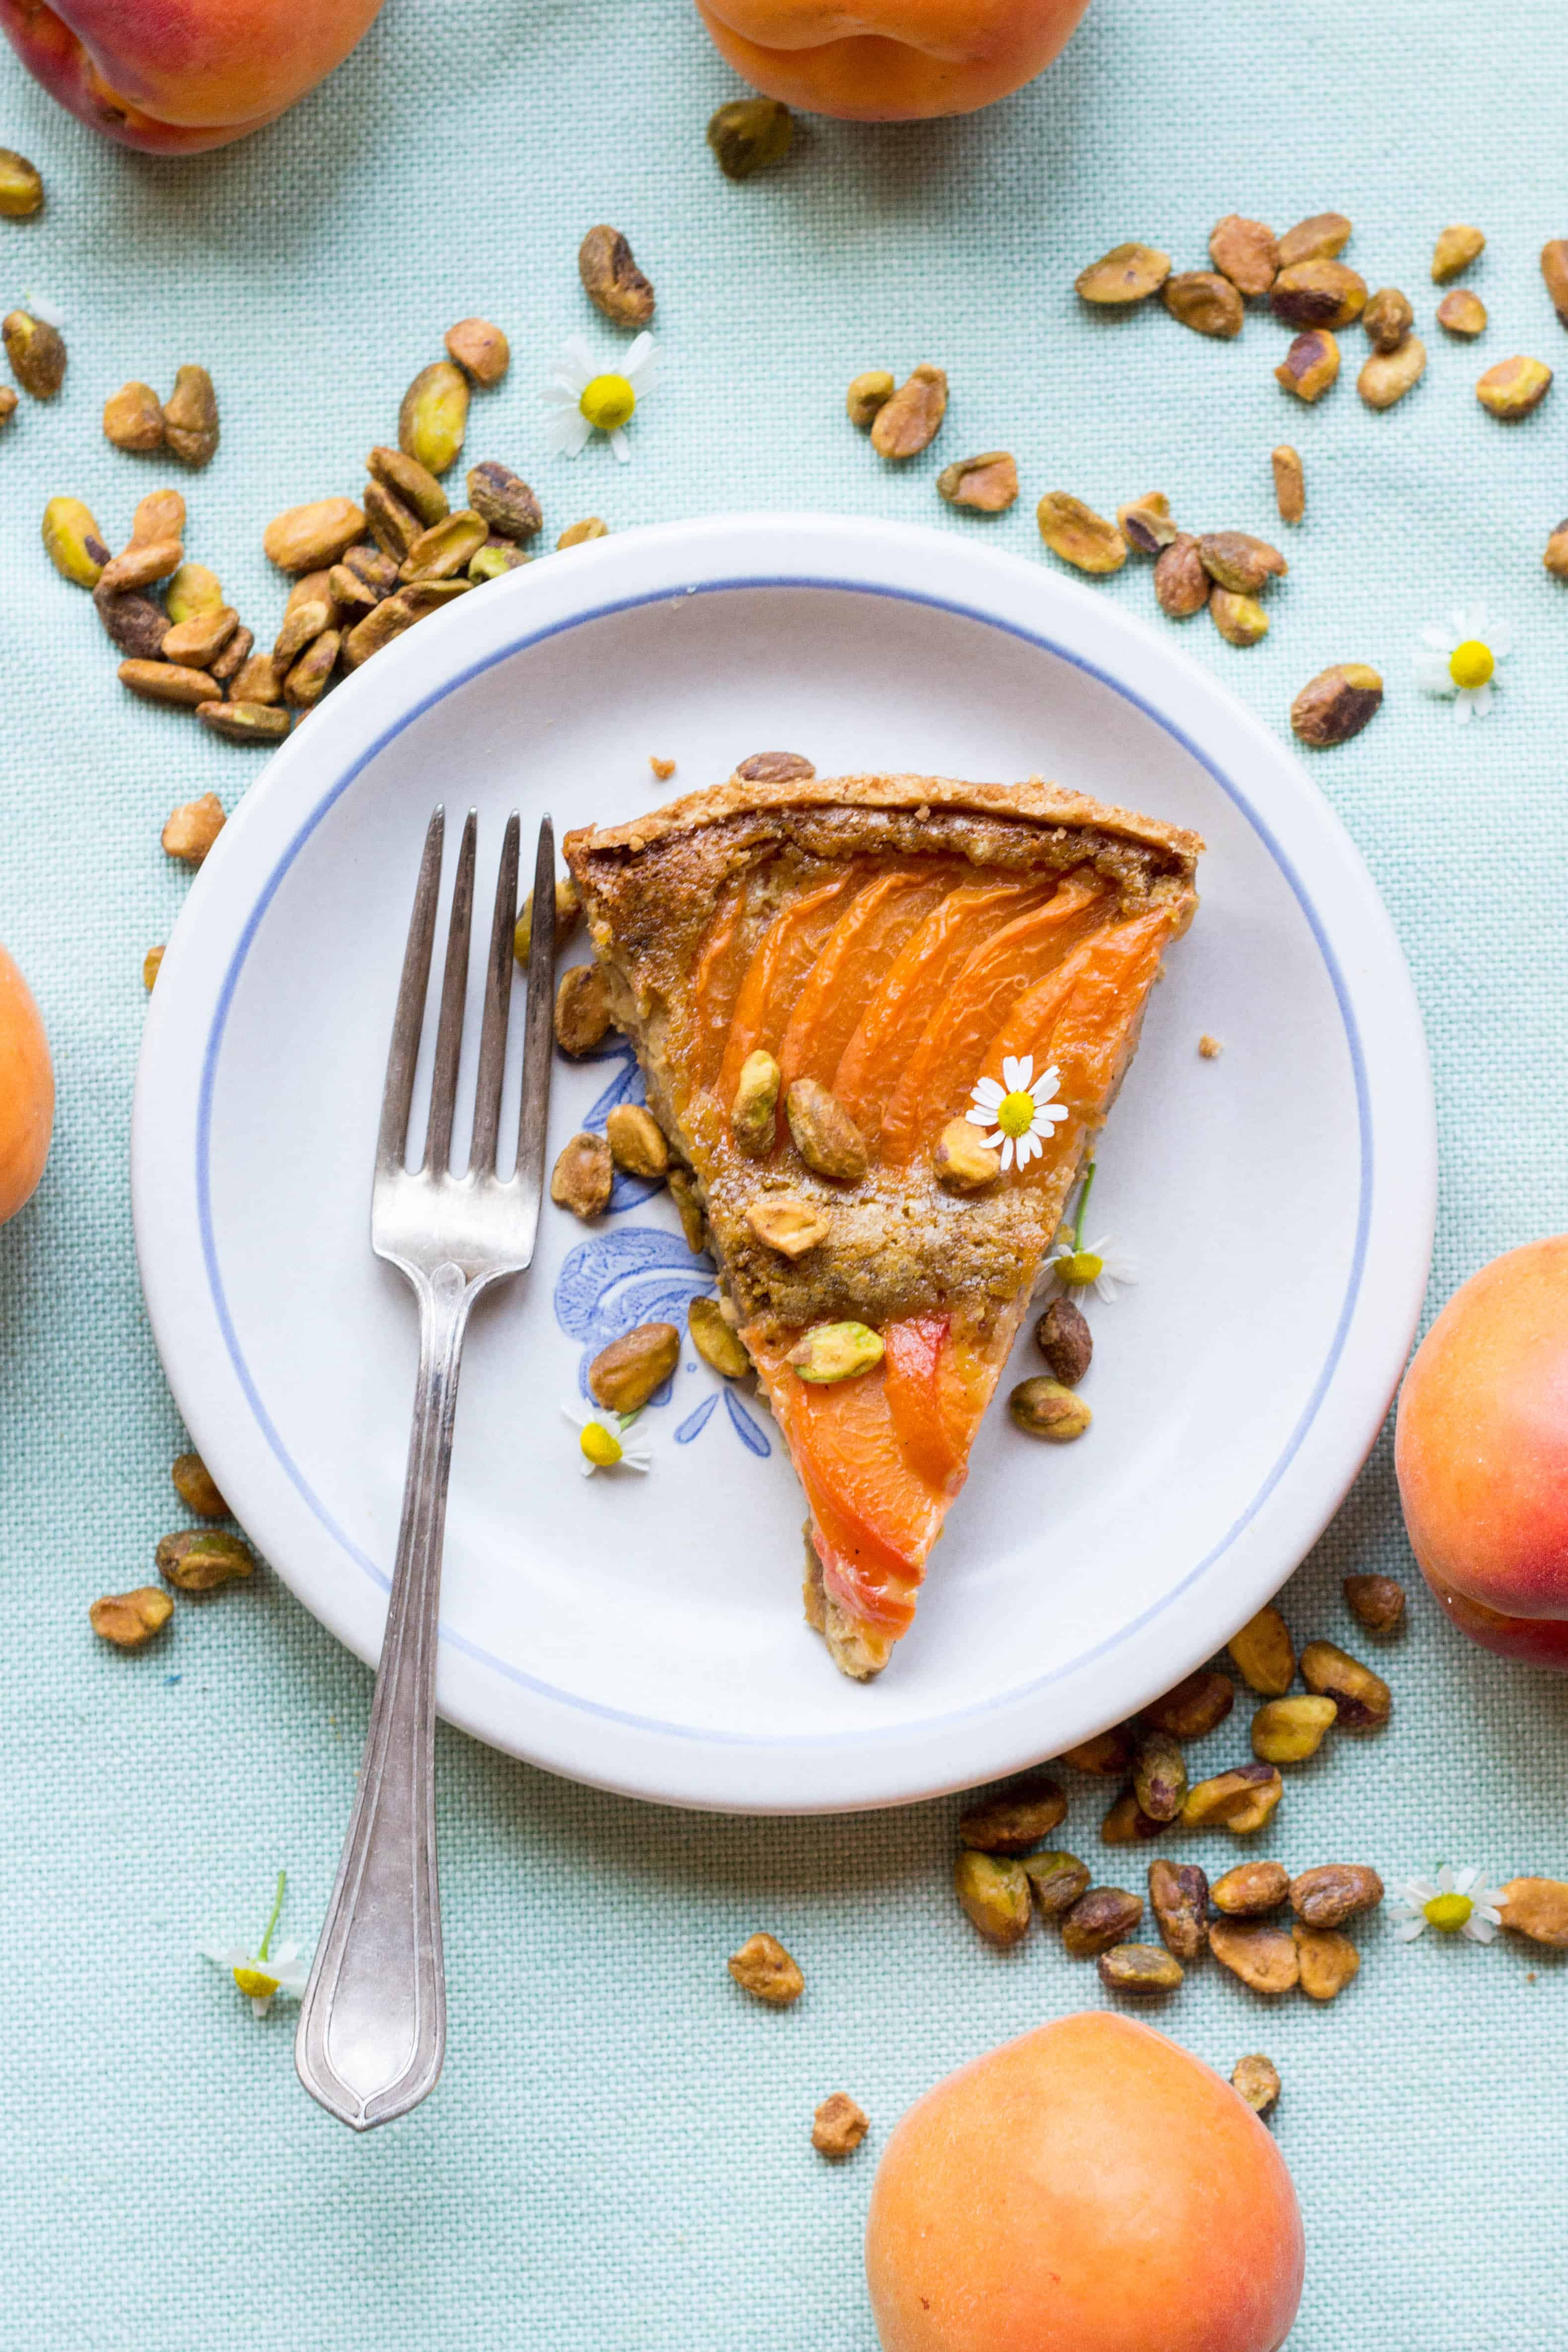 Top view of a slice of apricot tart on a white dessert plate.